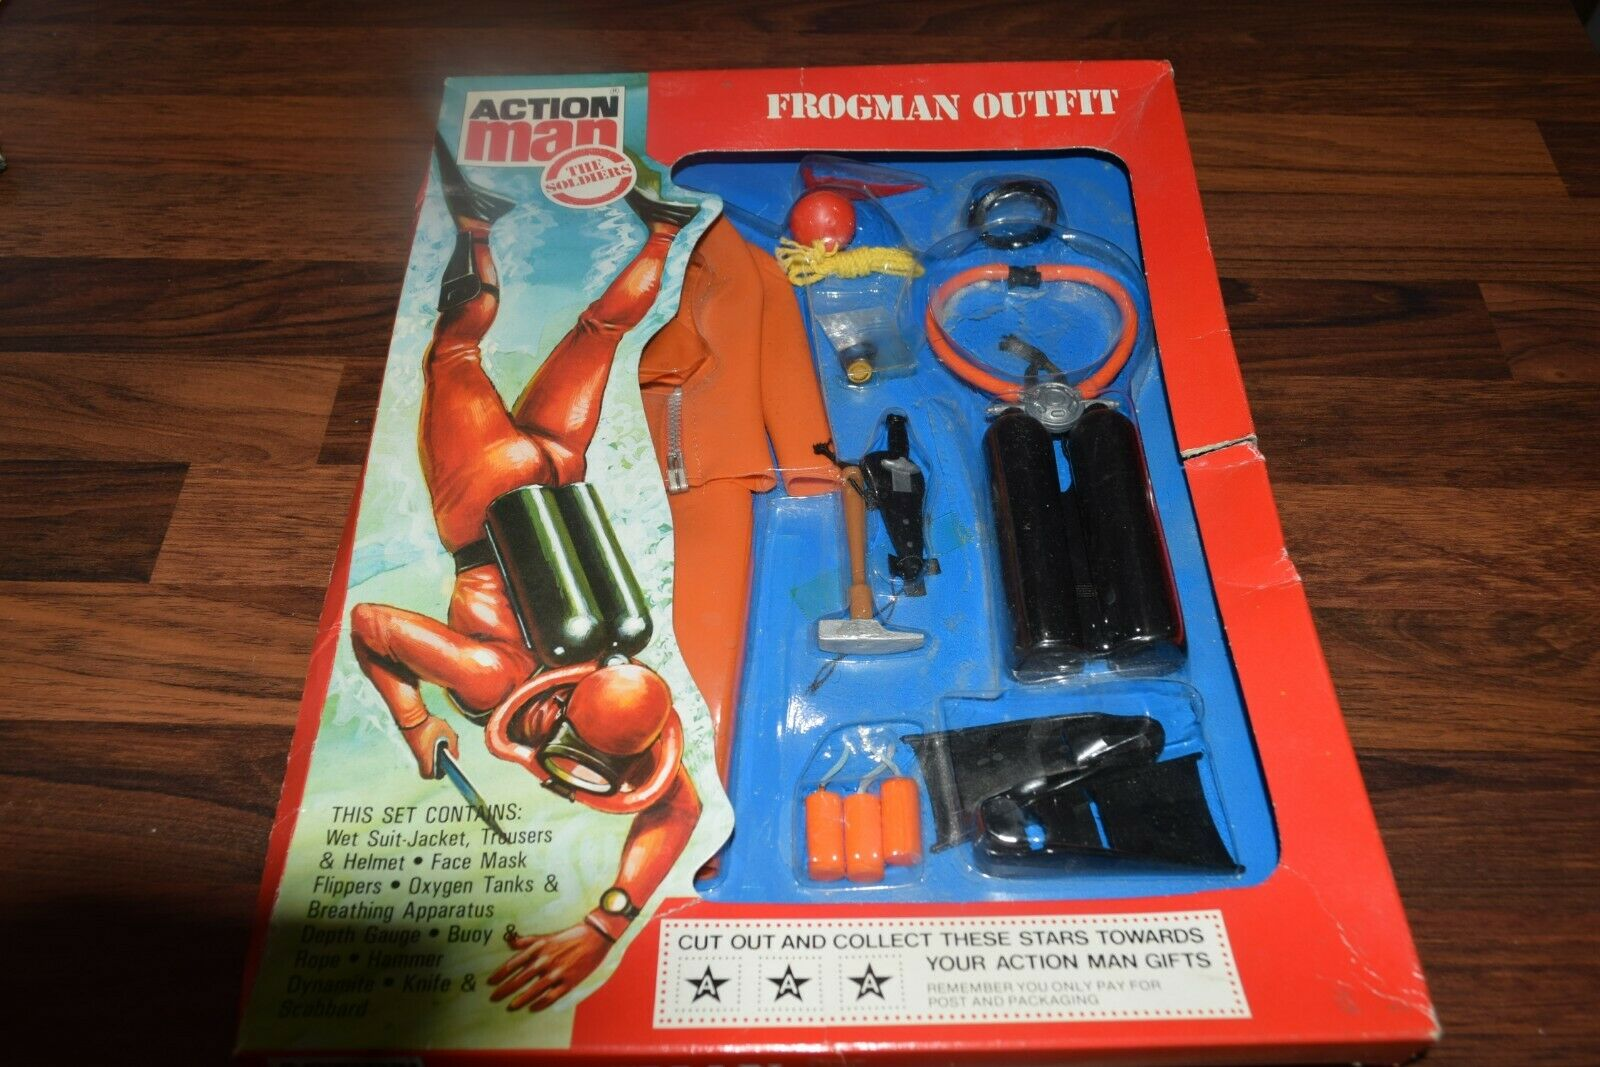 Vintage palitoy action man frogman outfit mint ex shop stock boxed carded